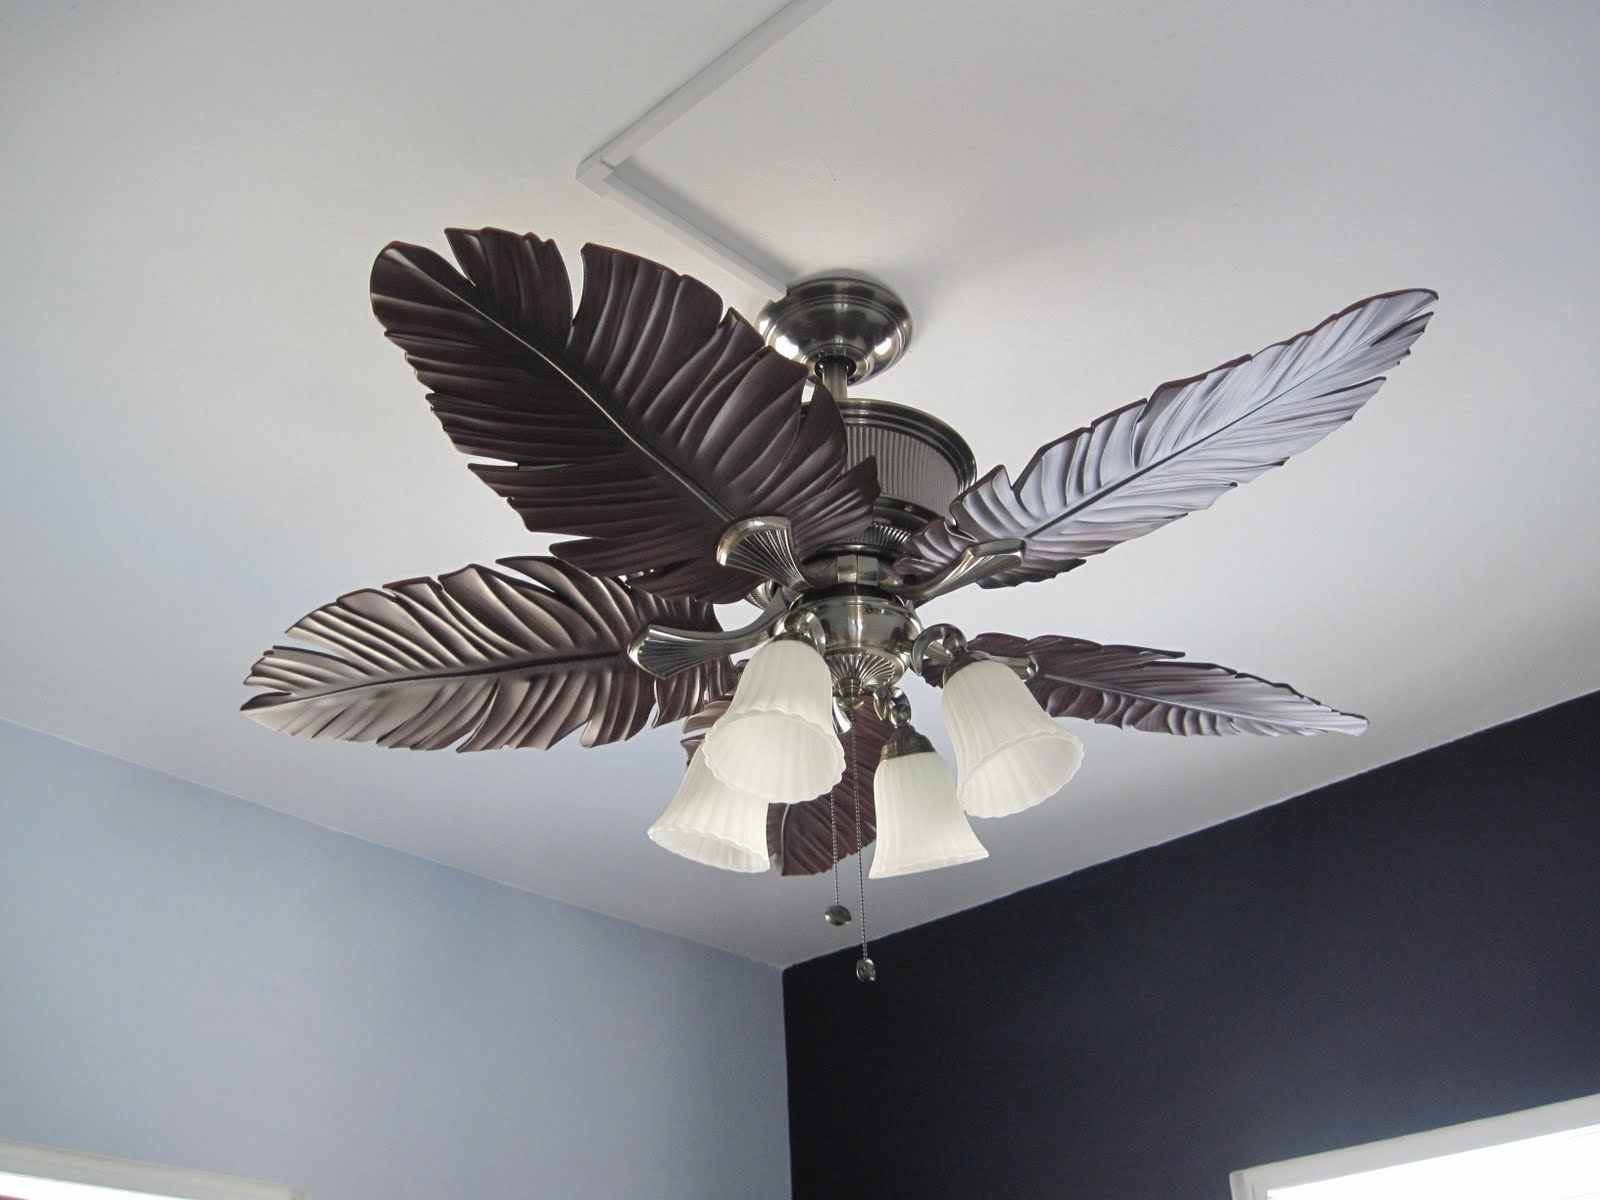 Tropical Outdoor Ceiling Fans With Lights Regarding Current Ceiling Lights : Tropical Ceiling Fans With Lights For Low Ceilings (View 16 of 20)